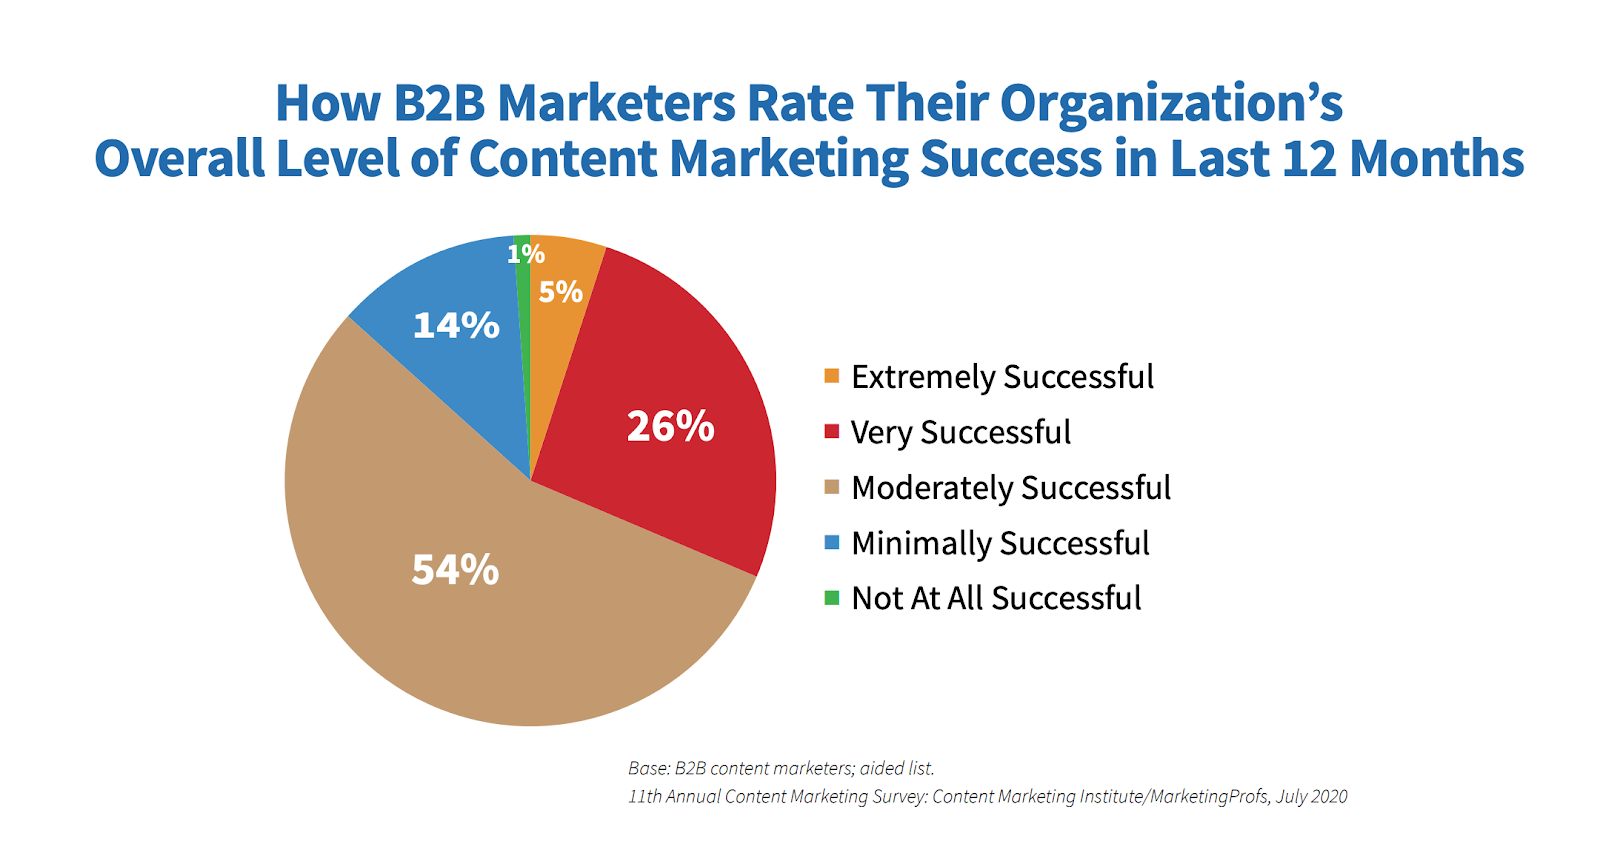 How B2B marketers rate their organization's overall level of content marketing success in last 12 months